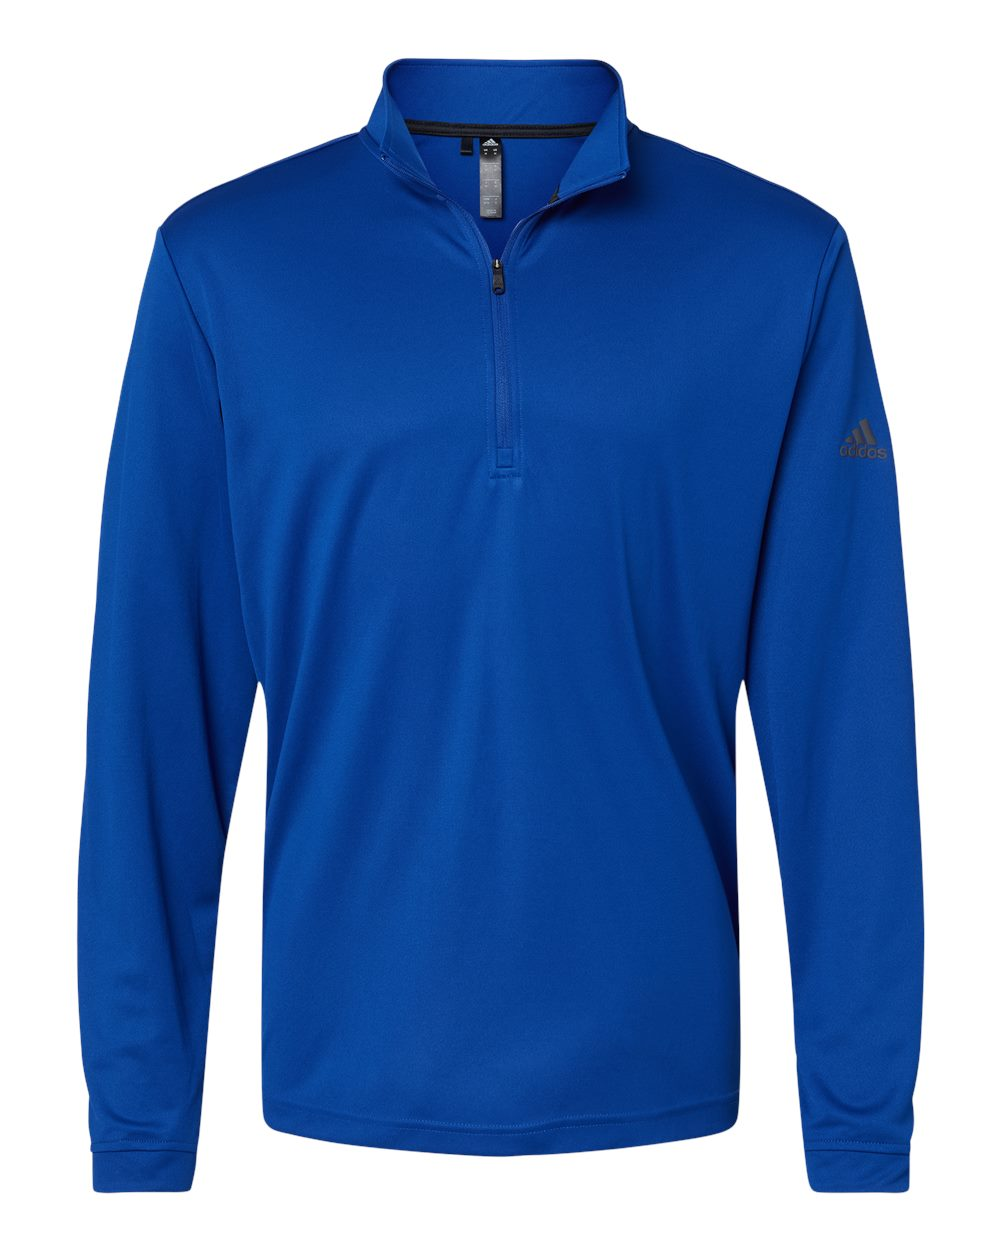 Adidas-Mens-Lightweight-Quarter-Zip-Pullover-Shirt-polyester-A401-up-to-4XL miniature 15